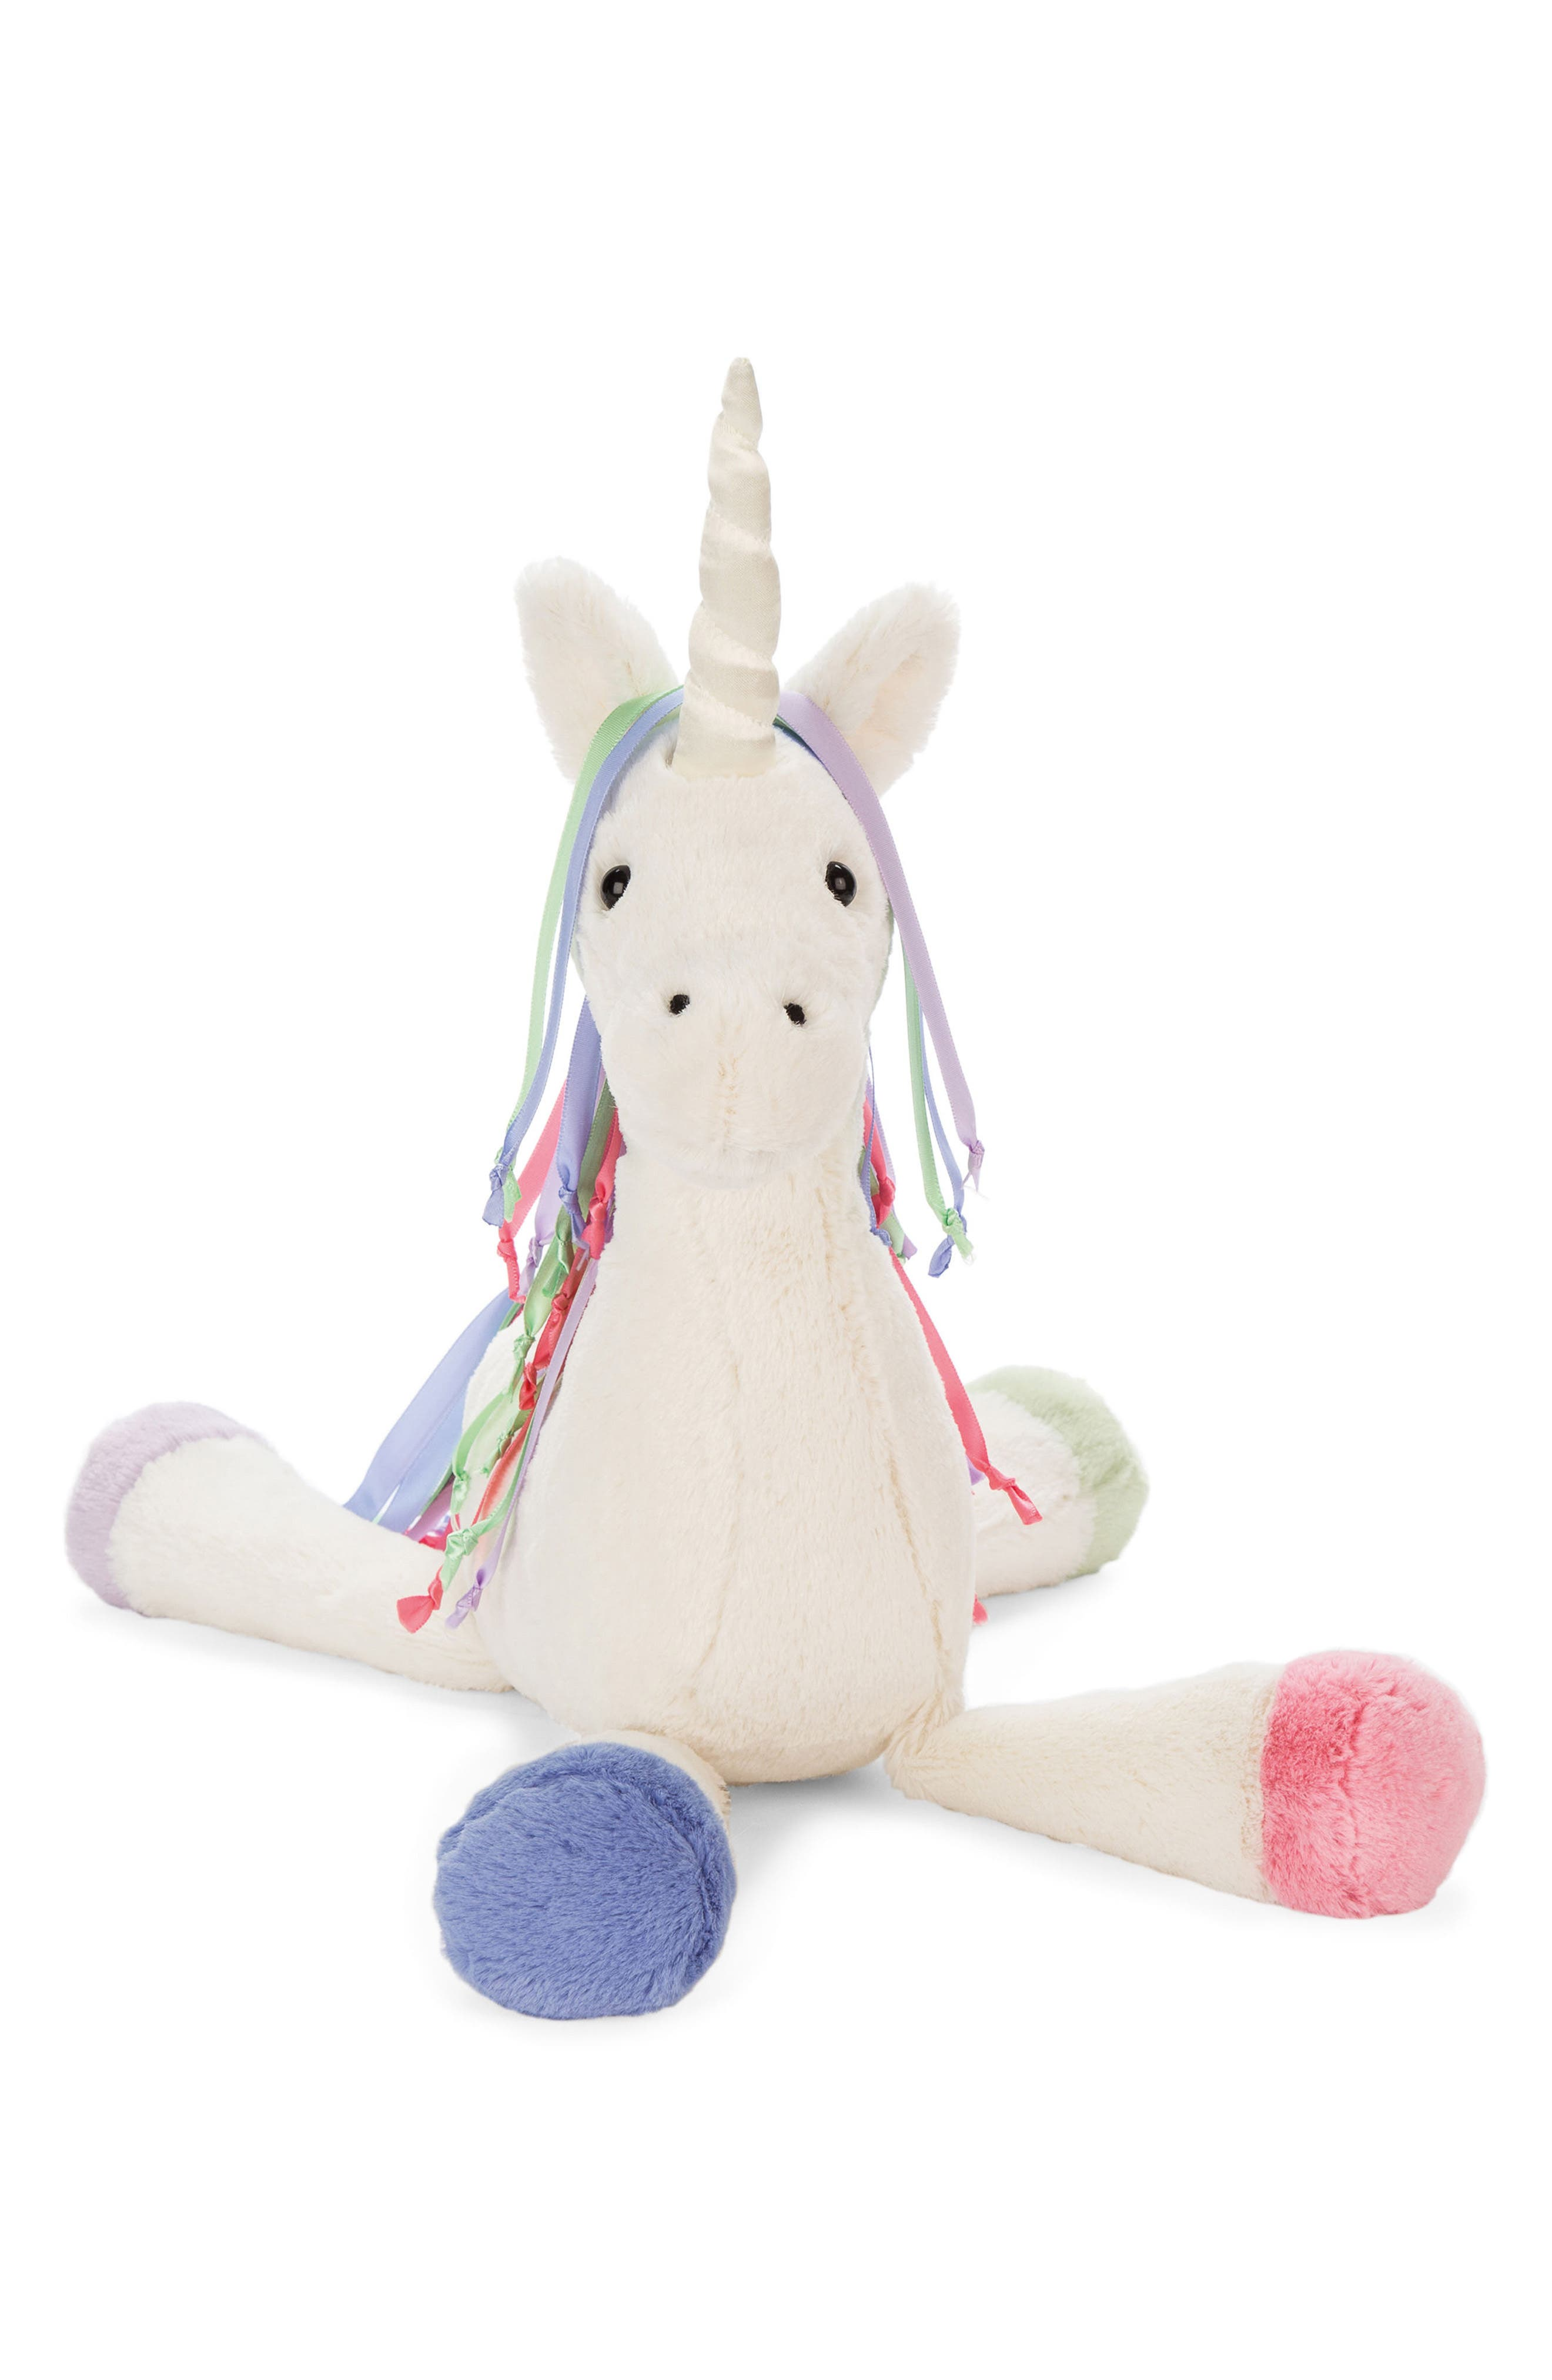 Large Lollopylou Unicorn Stuffed Animal,                             Main thumbnail 1, color,                             102